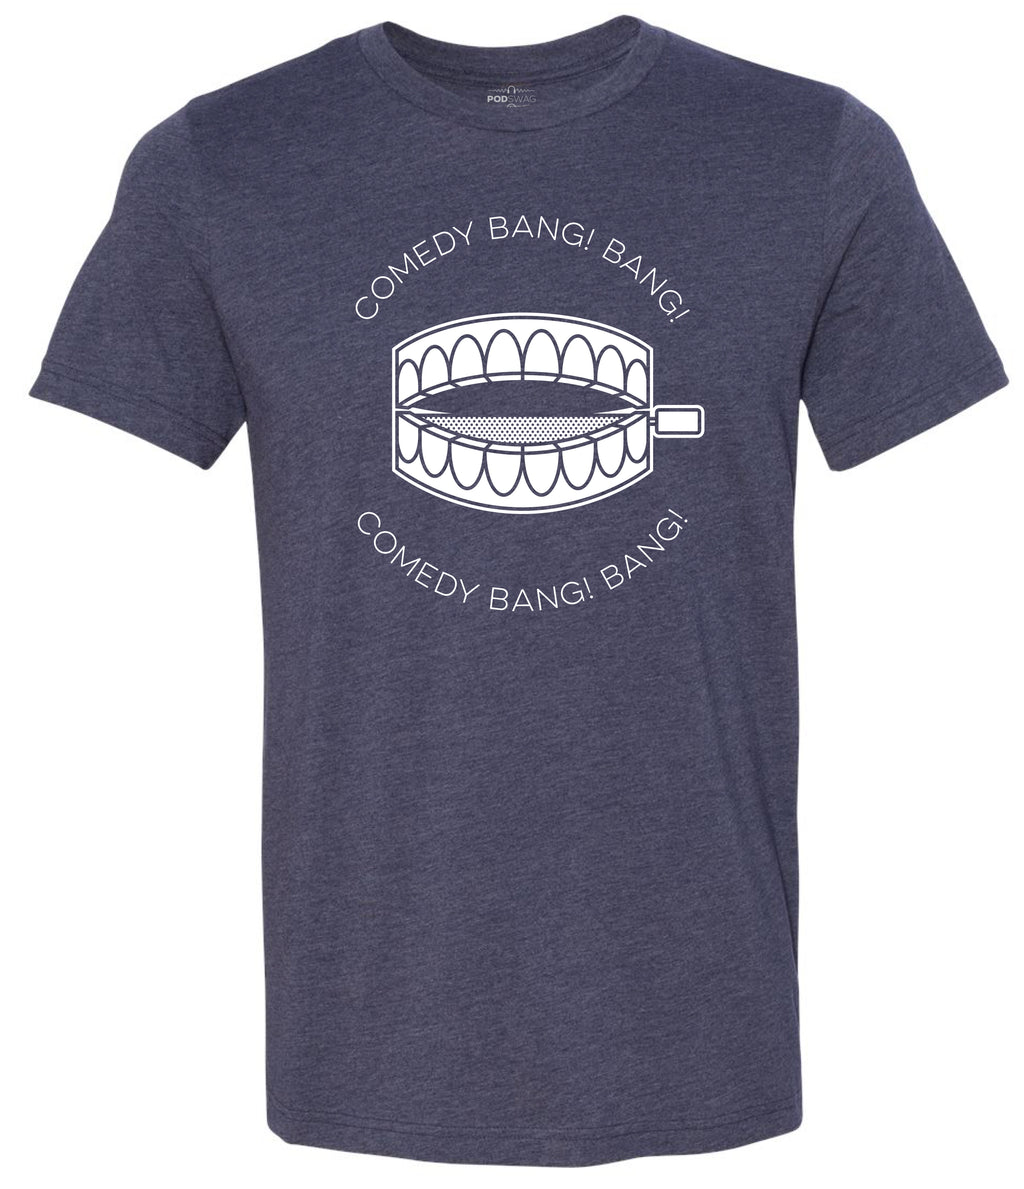 Comedy Bang Bang: Chatterbox T-shirt